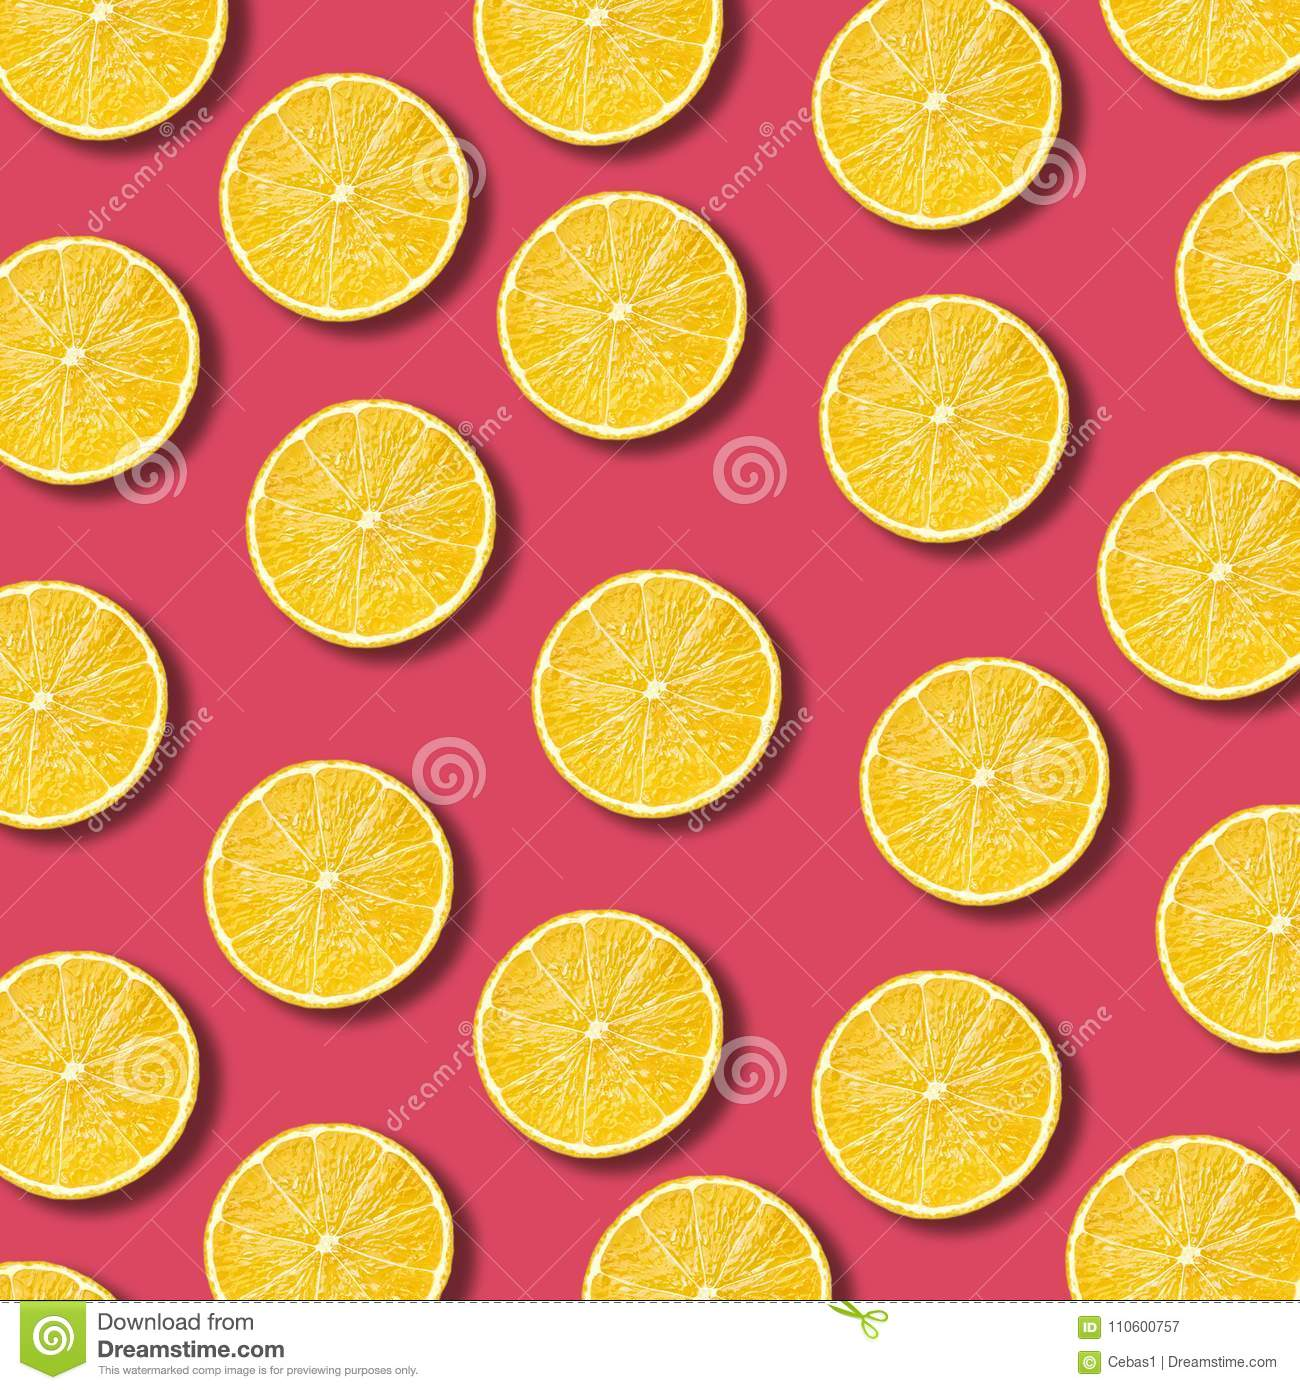 Lemon slices pattern on vibrant pomegranate color background